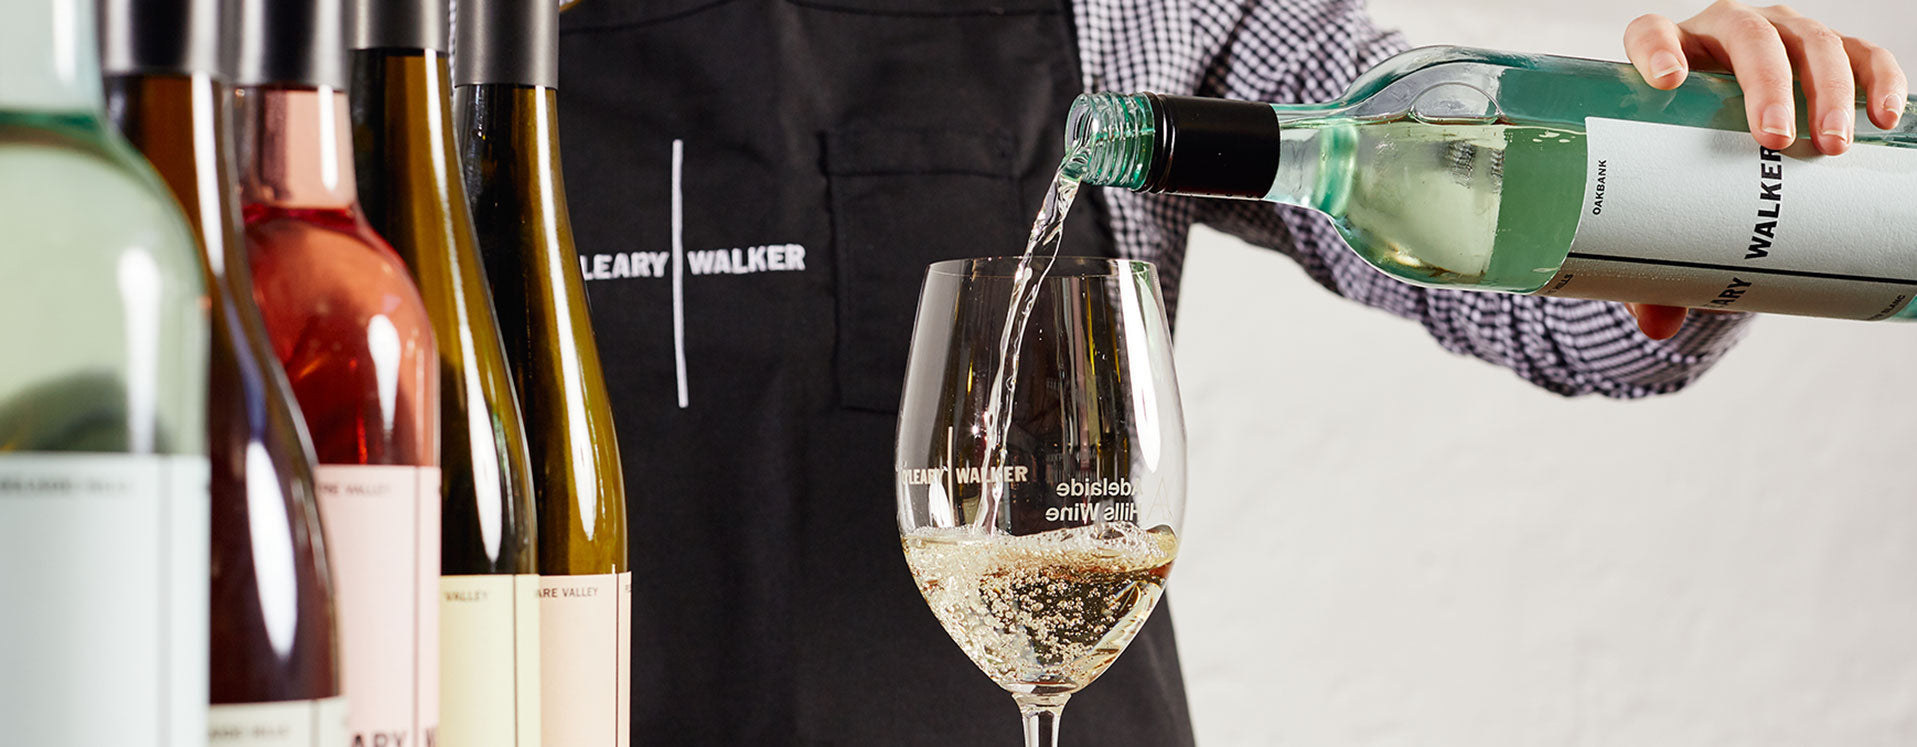 Close up of an O'Leary Walker staff member in a checkered shirt and black apron, pouring a glass of Sauvignon Blanc. Five other bottles of wine are lined up next to the glass.